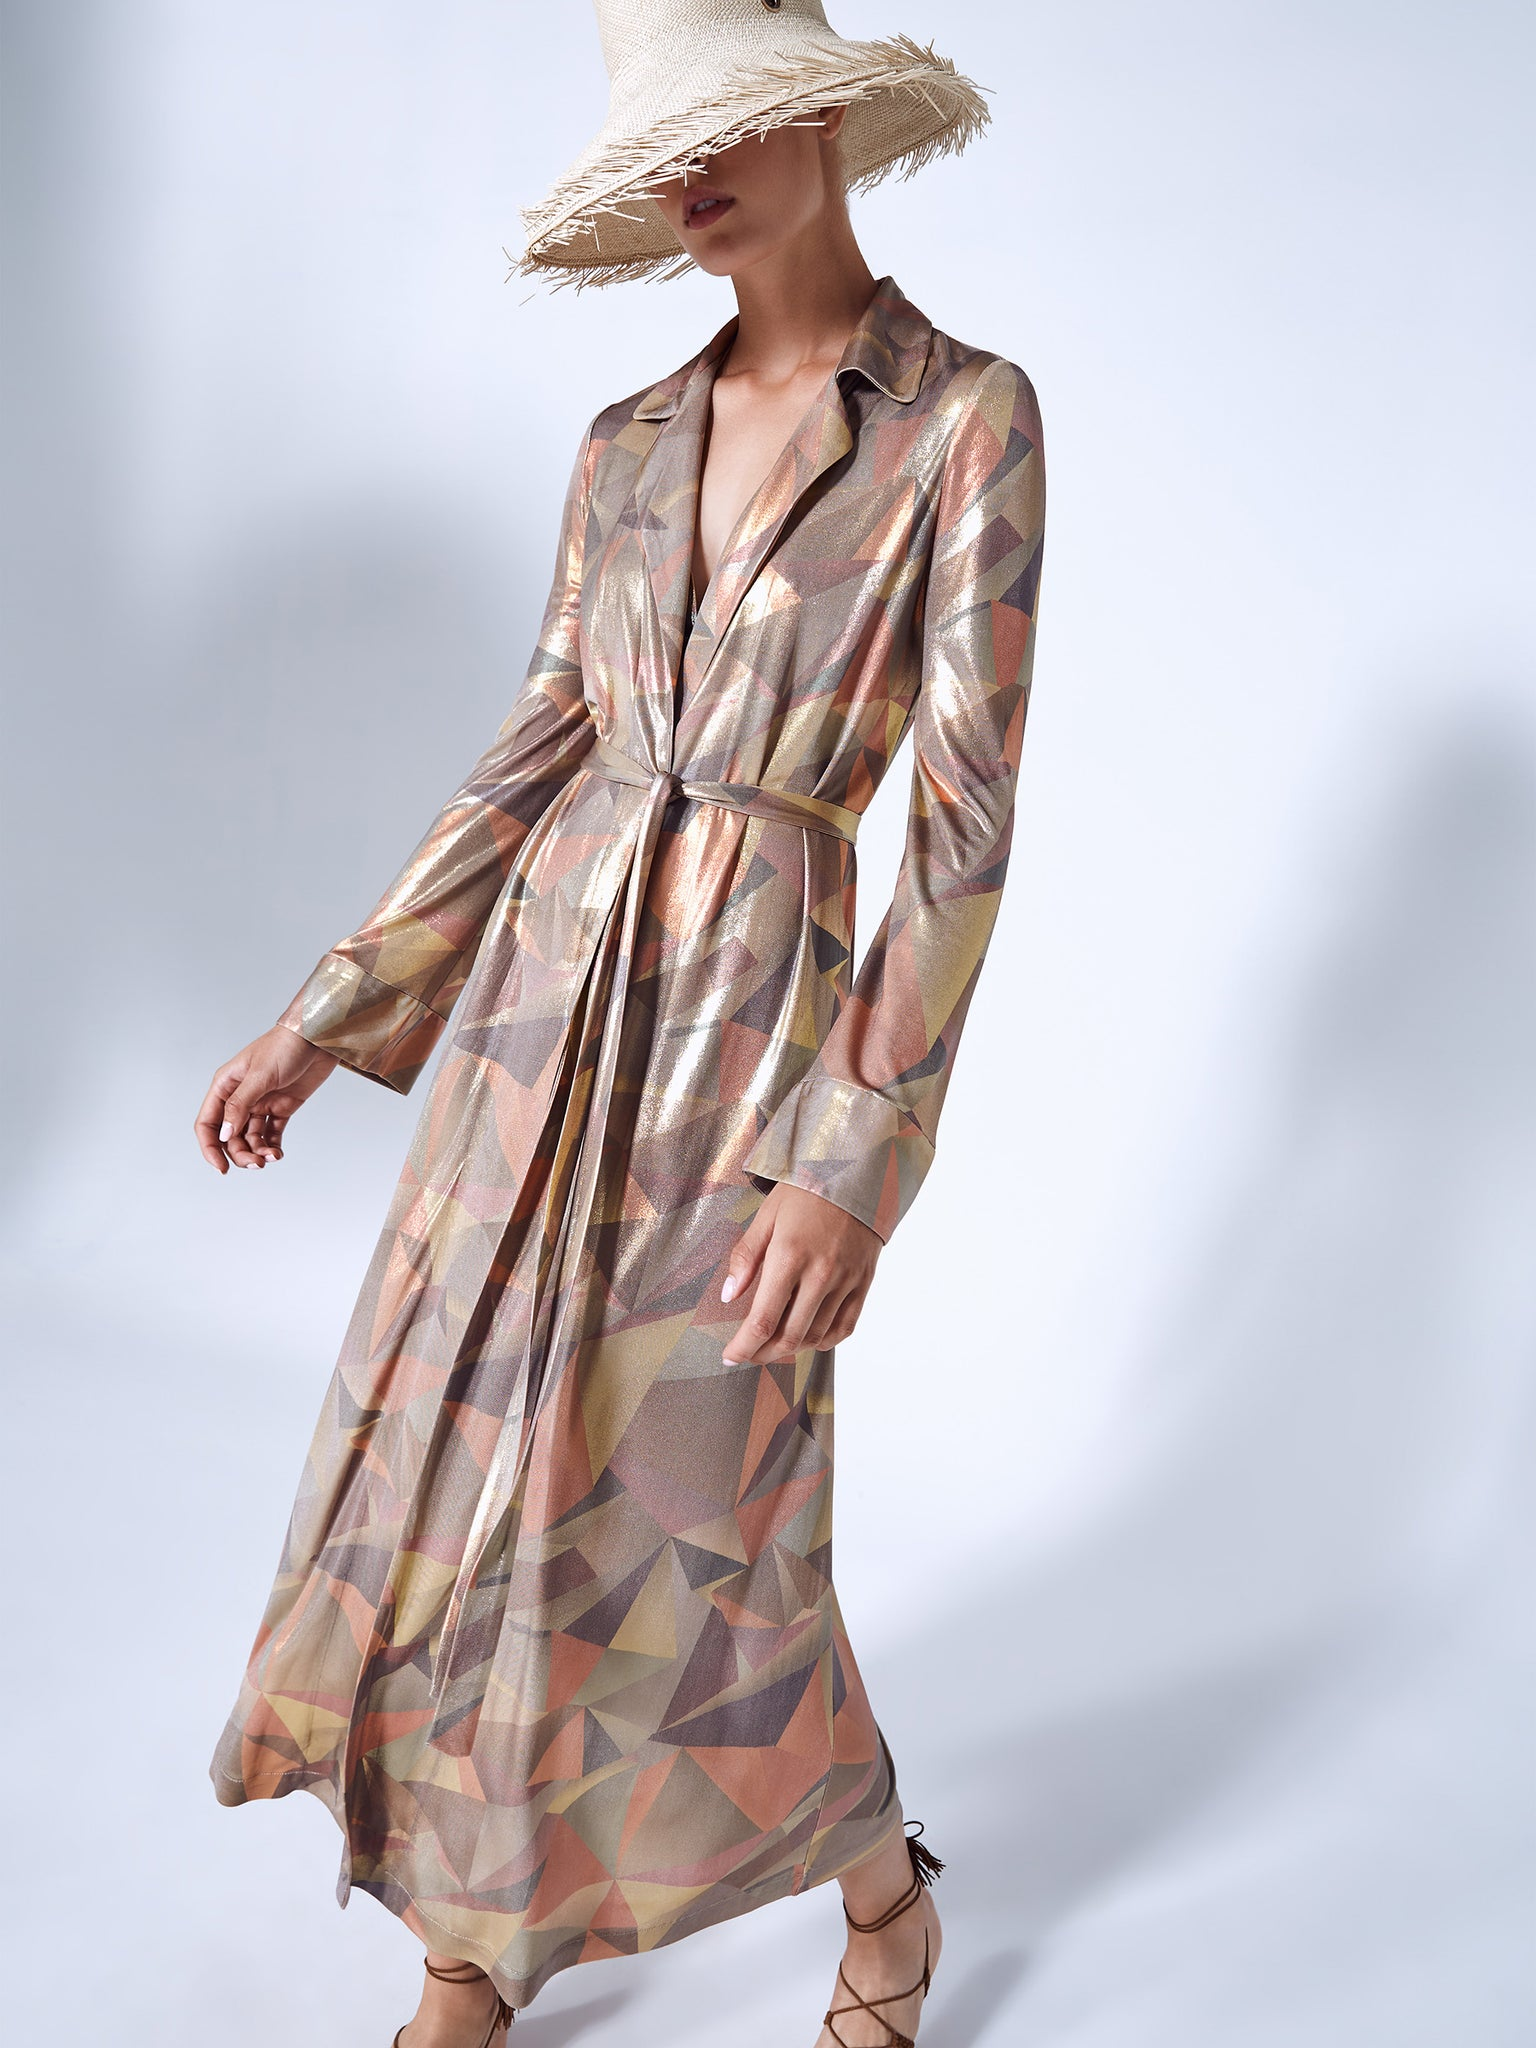 Alexis Beranger robe in bronze abstract print - Rear View